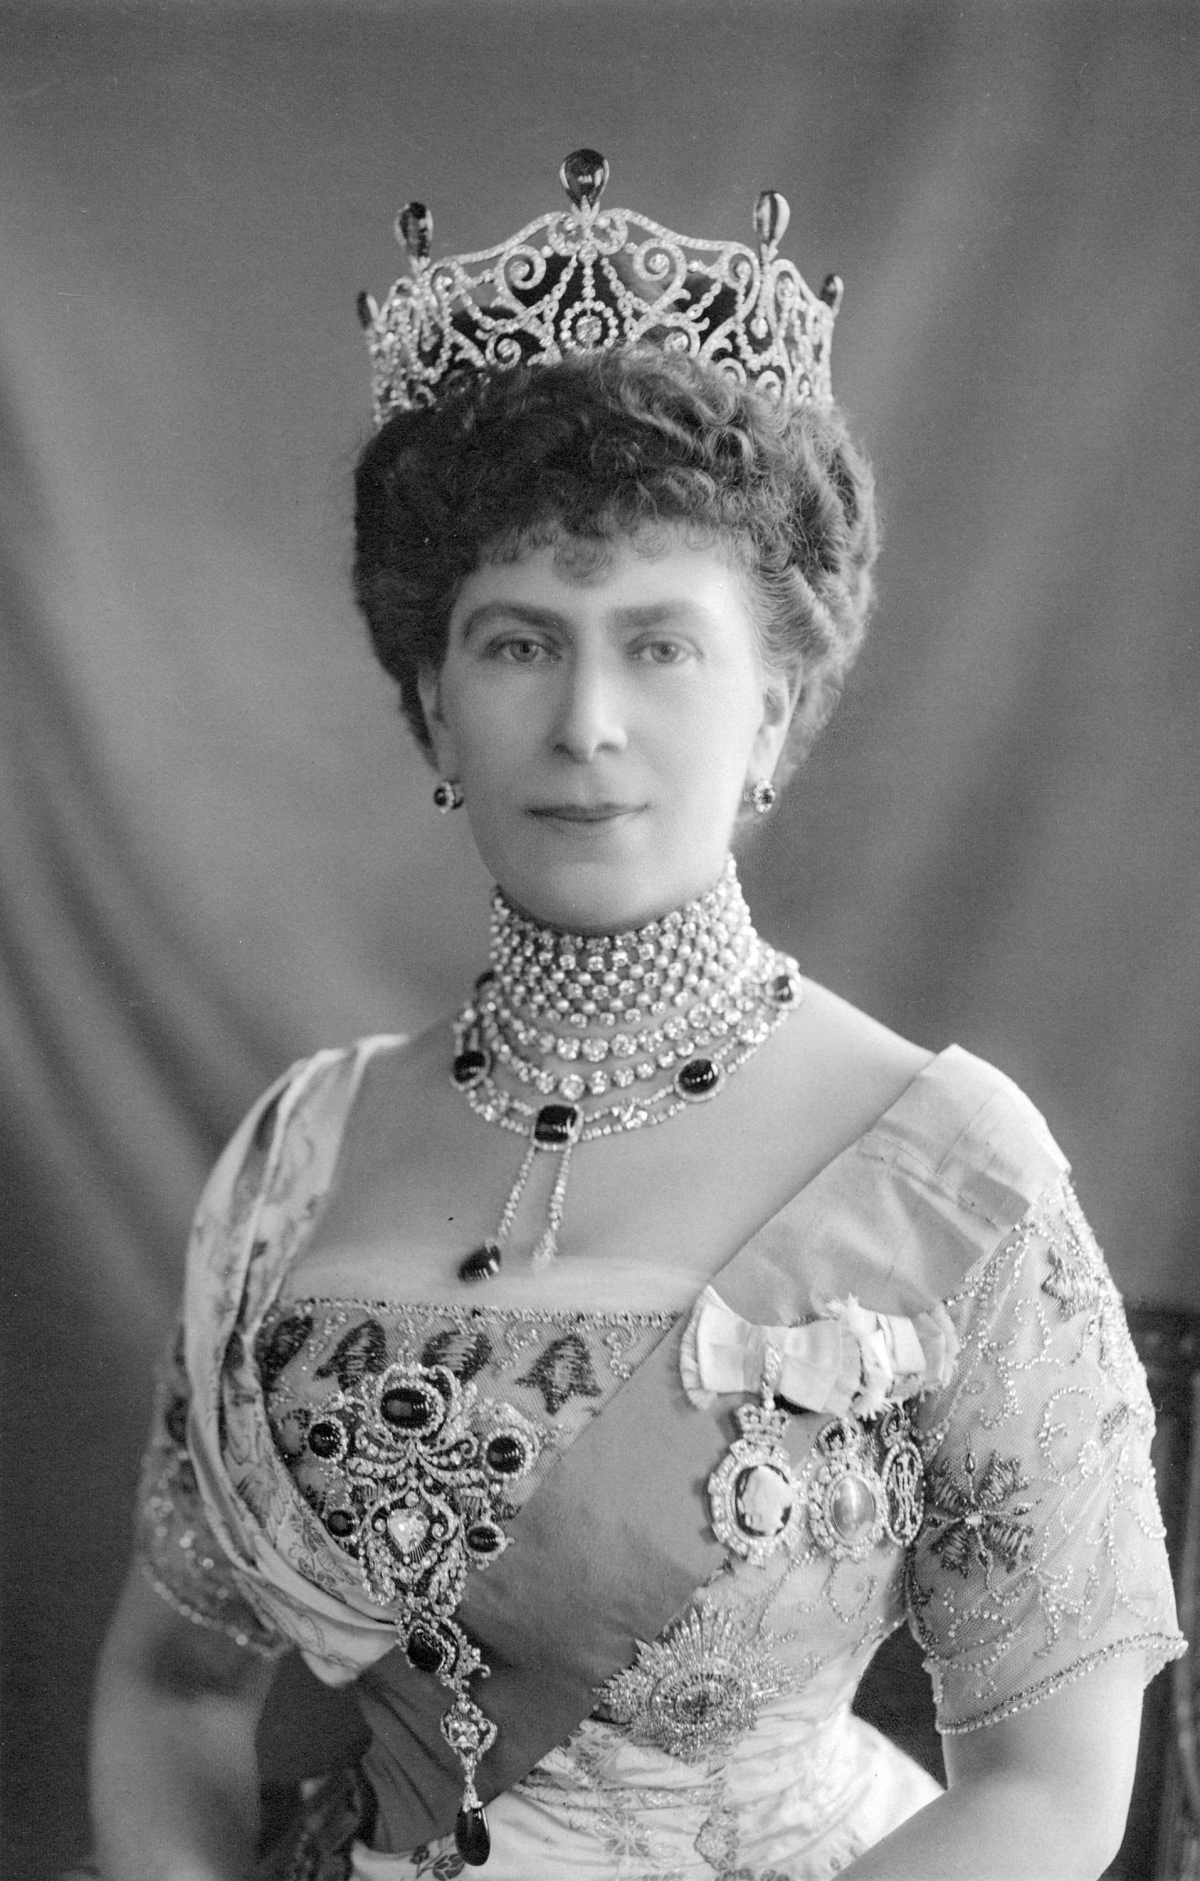 Photograph of Queen Mary wearing the Delhi Durbar tiara with emeralds, Dehli Durbar necklace and stomacher, plus the star of the Order of the Garter, ca. 1913